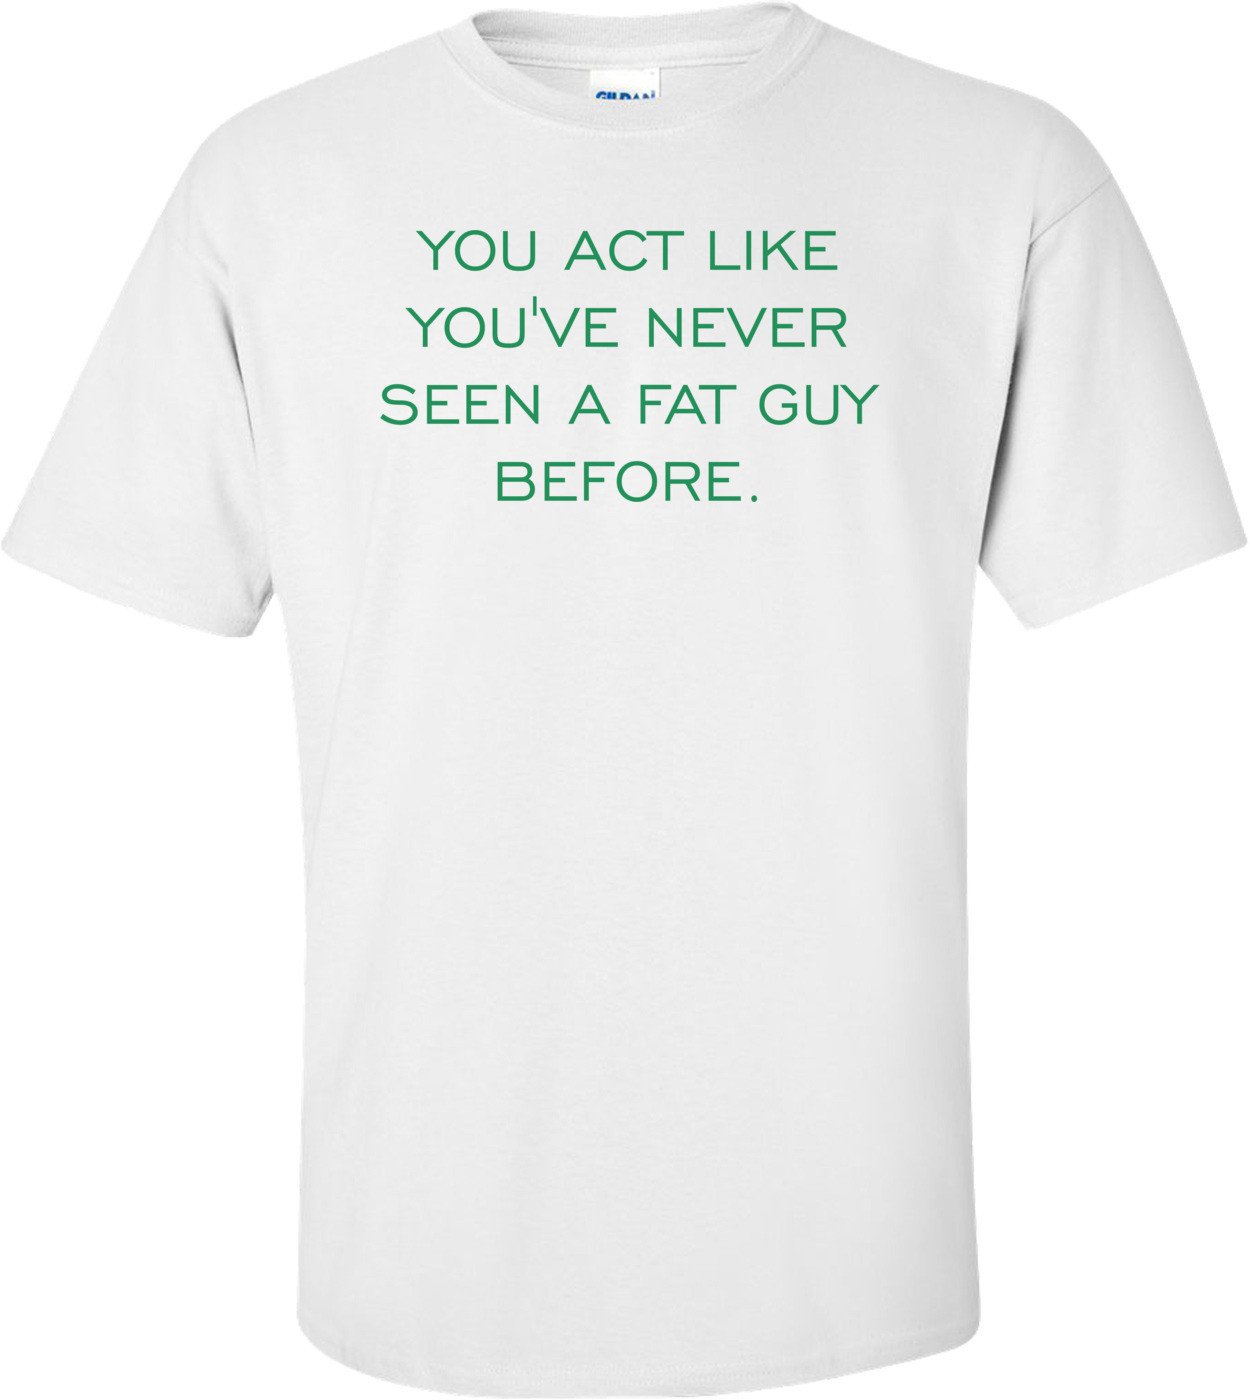 YOU ACT LIKE YOU'VE NEVER SEEN A FAT GUY BEFORE. Shirt